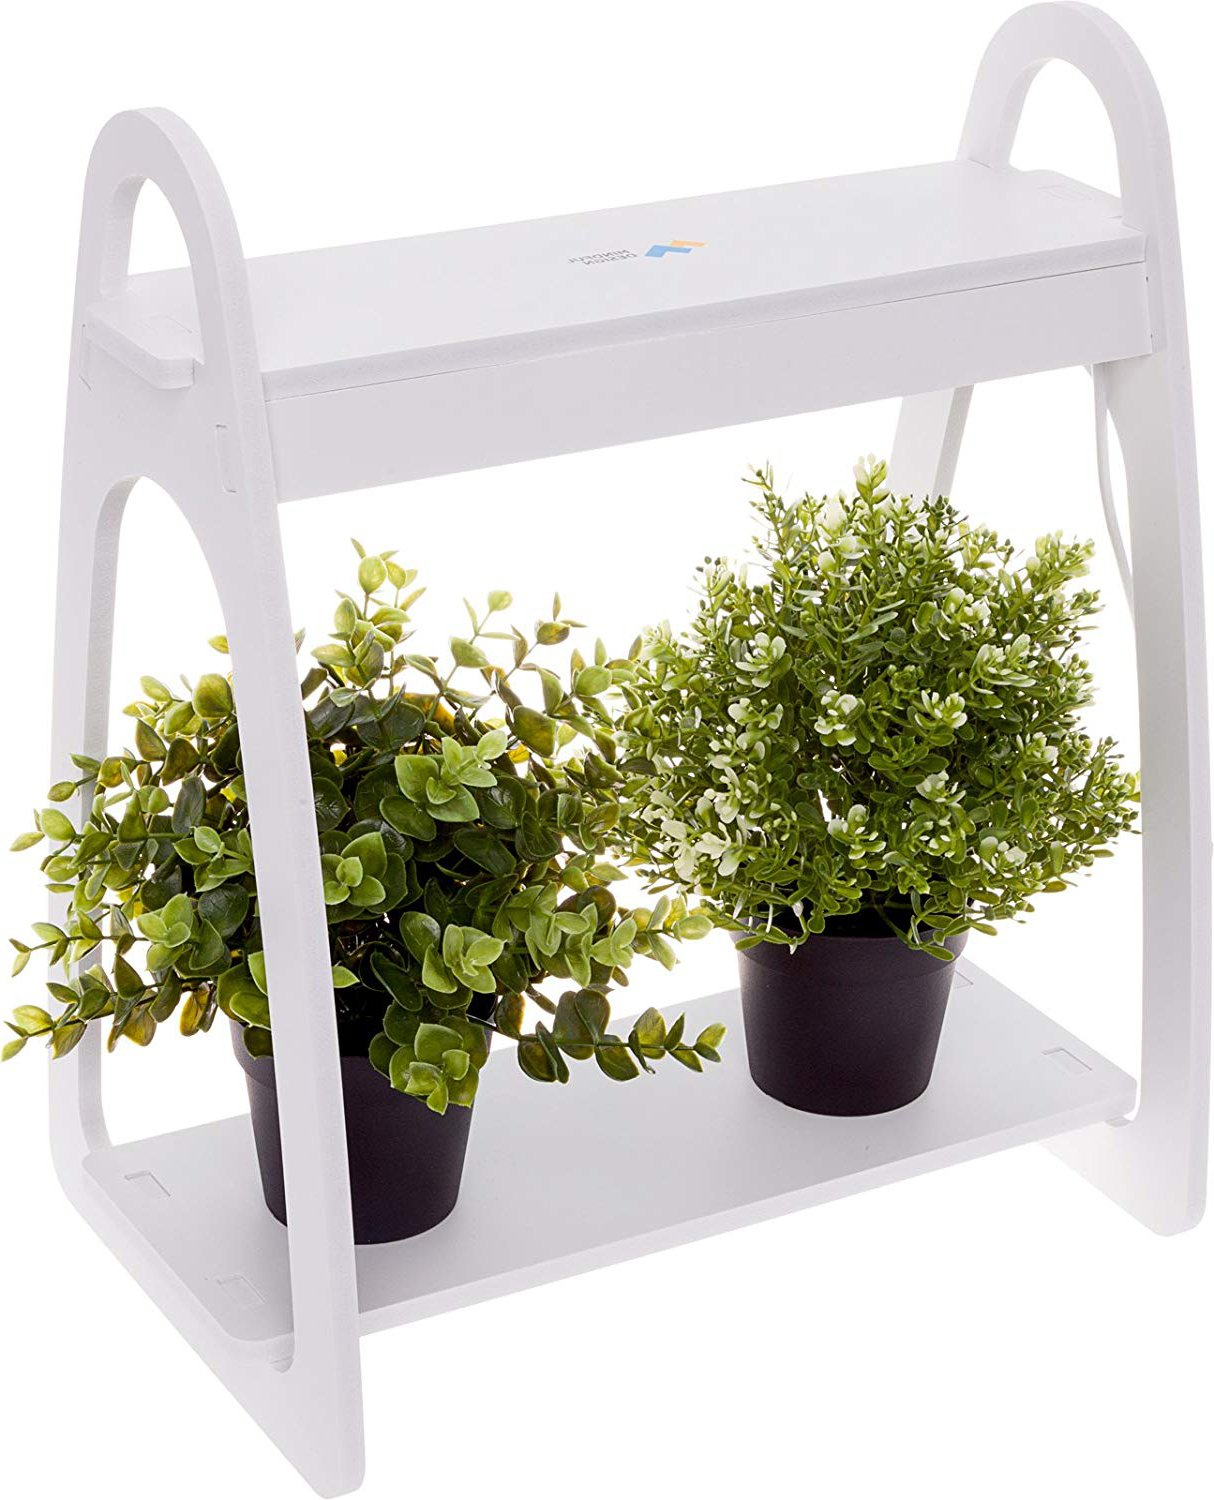 Mindful Design LED Mini Indoor Herb Garden - Home Counter Top Herbs/Vegetable Planter (White) by Mindful Design